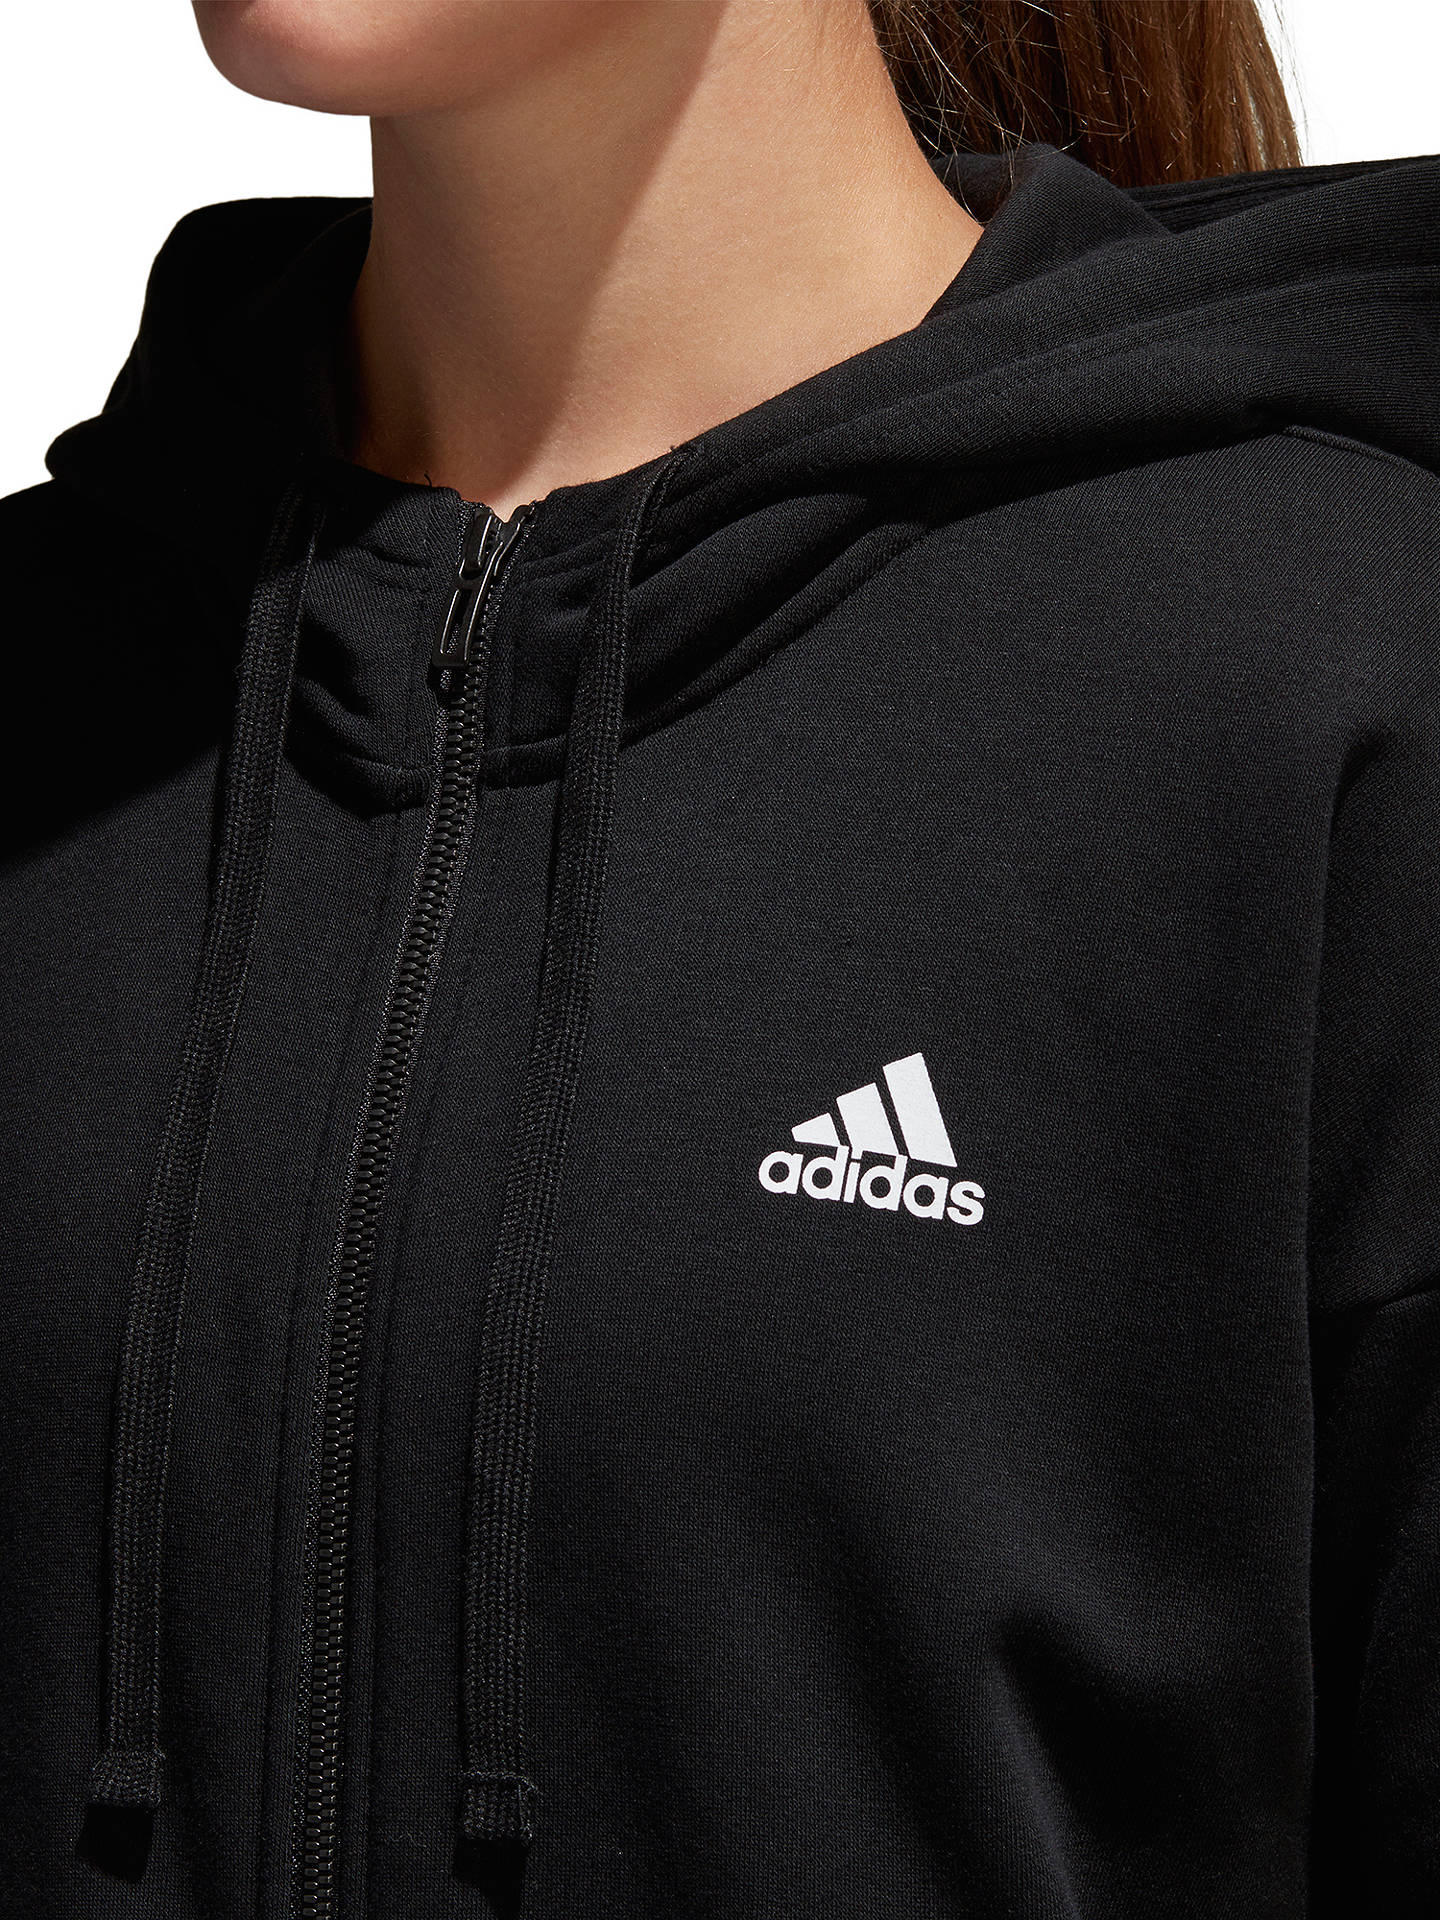 Buy adidas Essentials 3-Stripes Hoodie, Black, XS Online at johnlewis.com